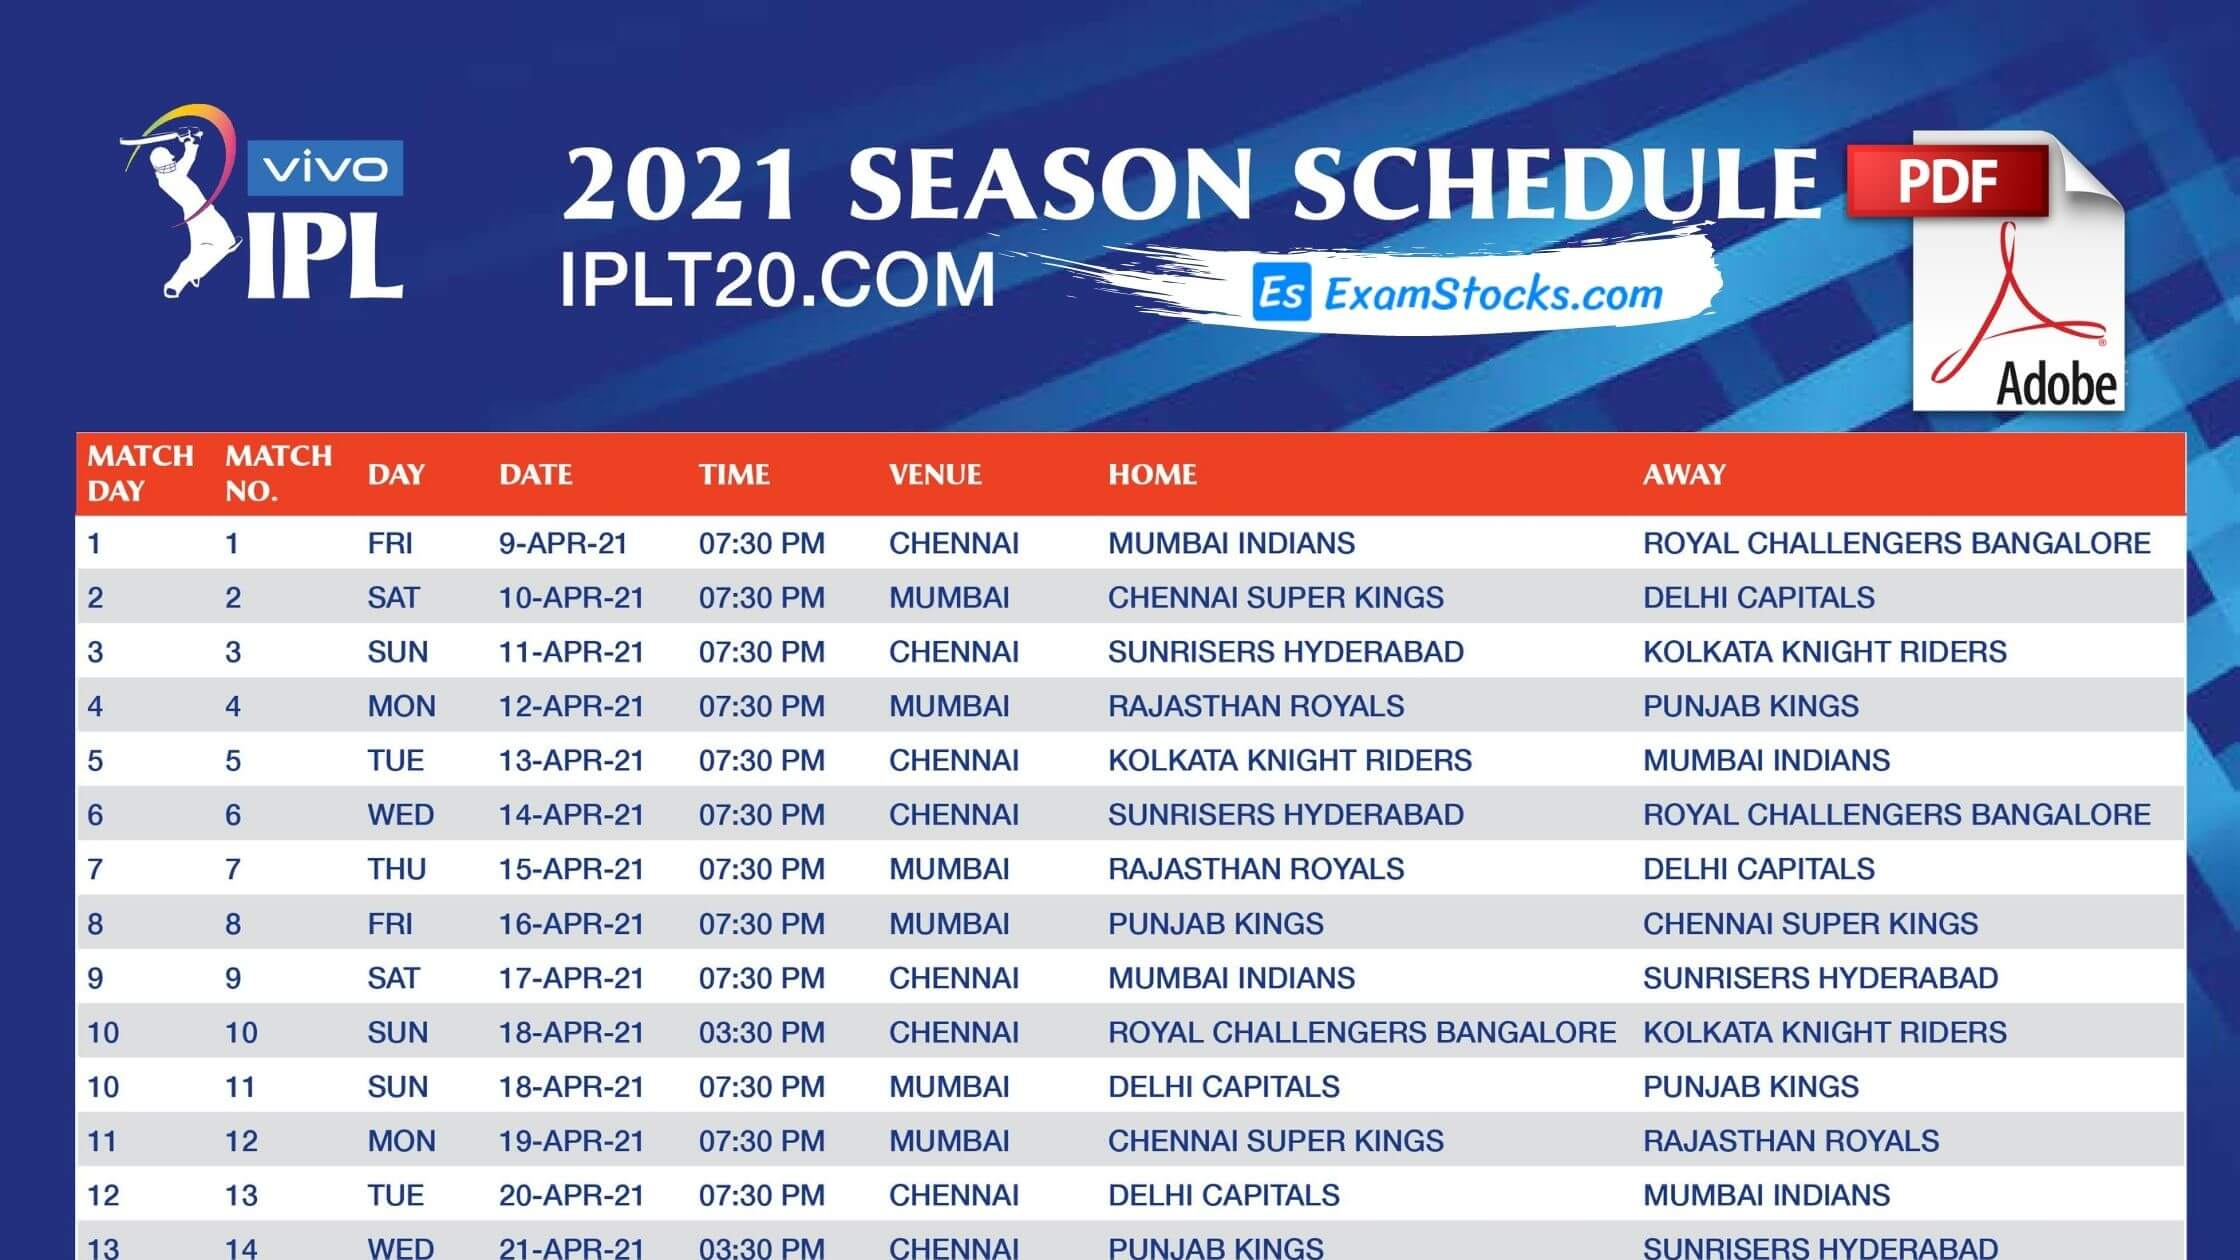 IPL 2021 Schedule PDF Complete Timetable & Match Timings